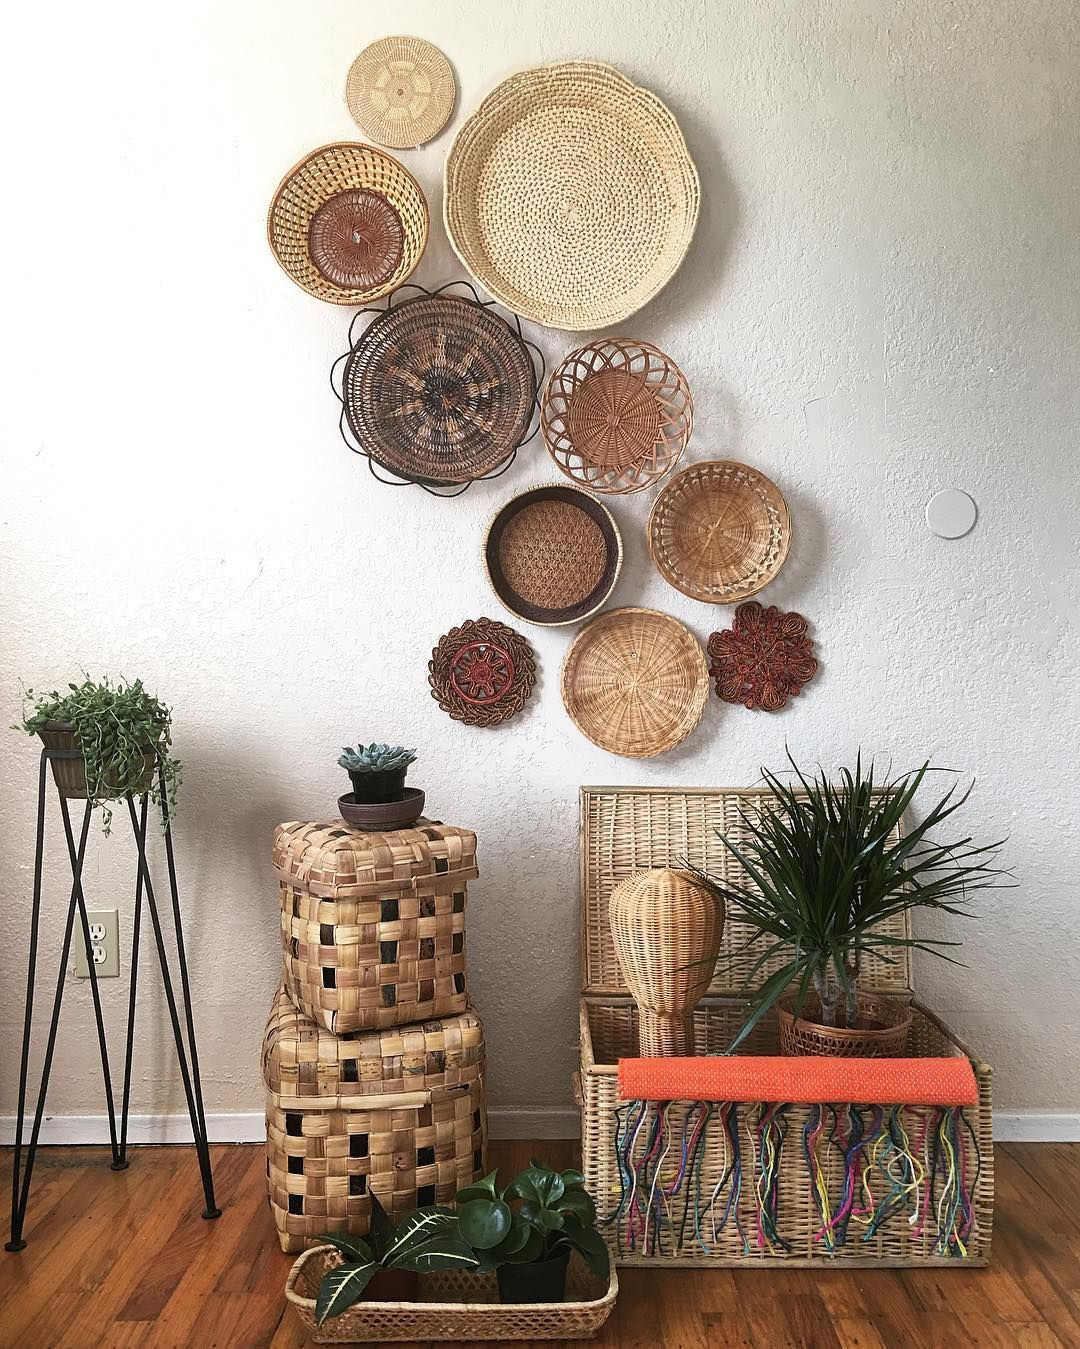 Redecorate With What You Have - baskets